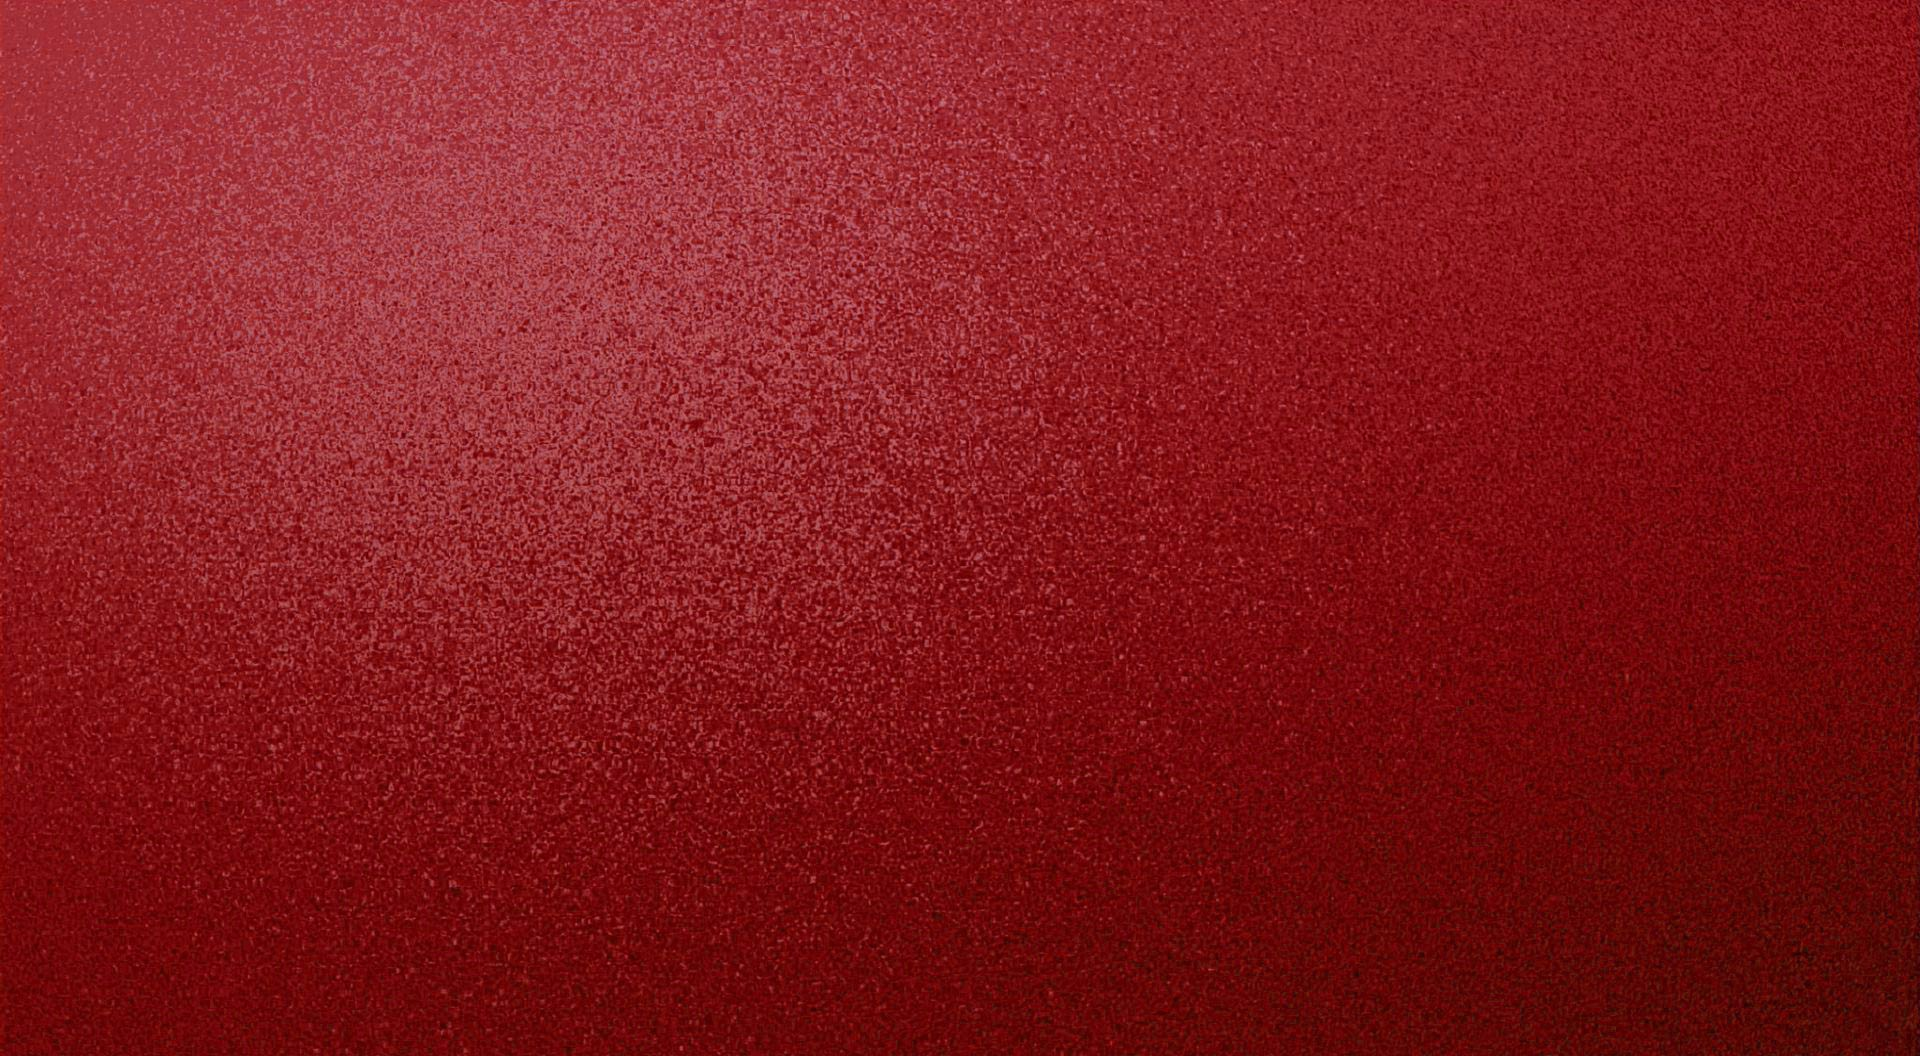 Red Textured Backgrounds Desktop Wallpapers